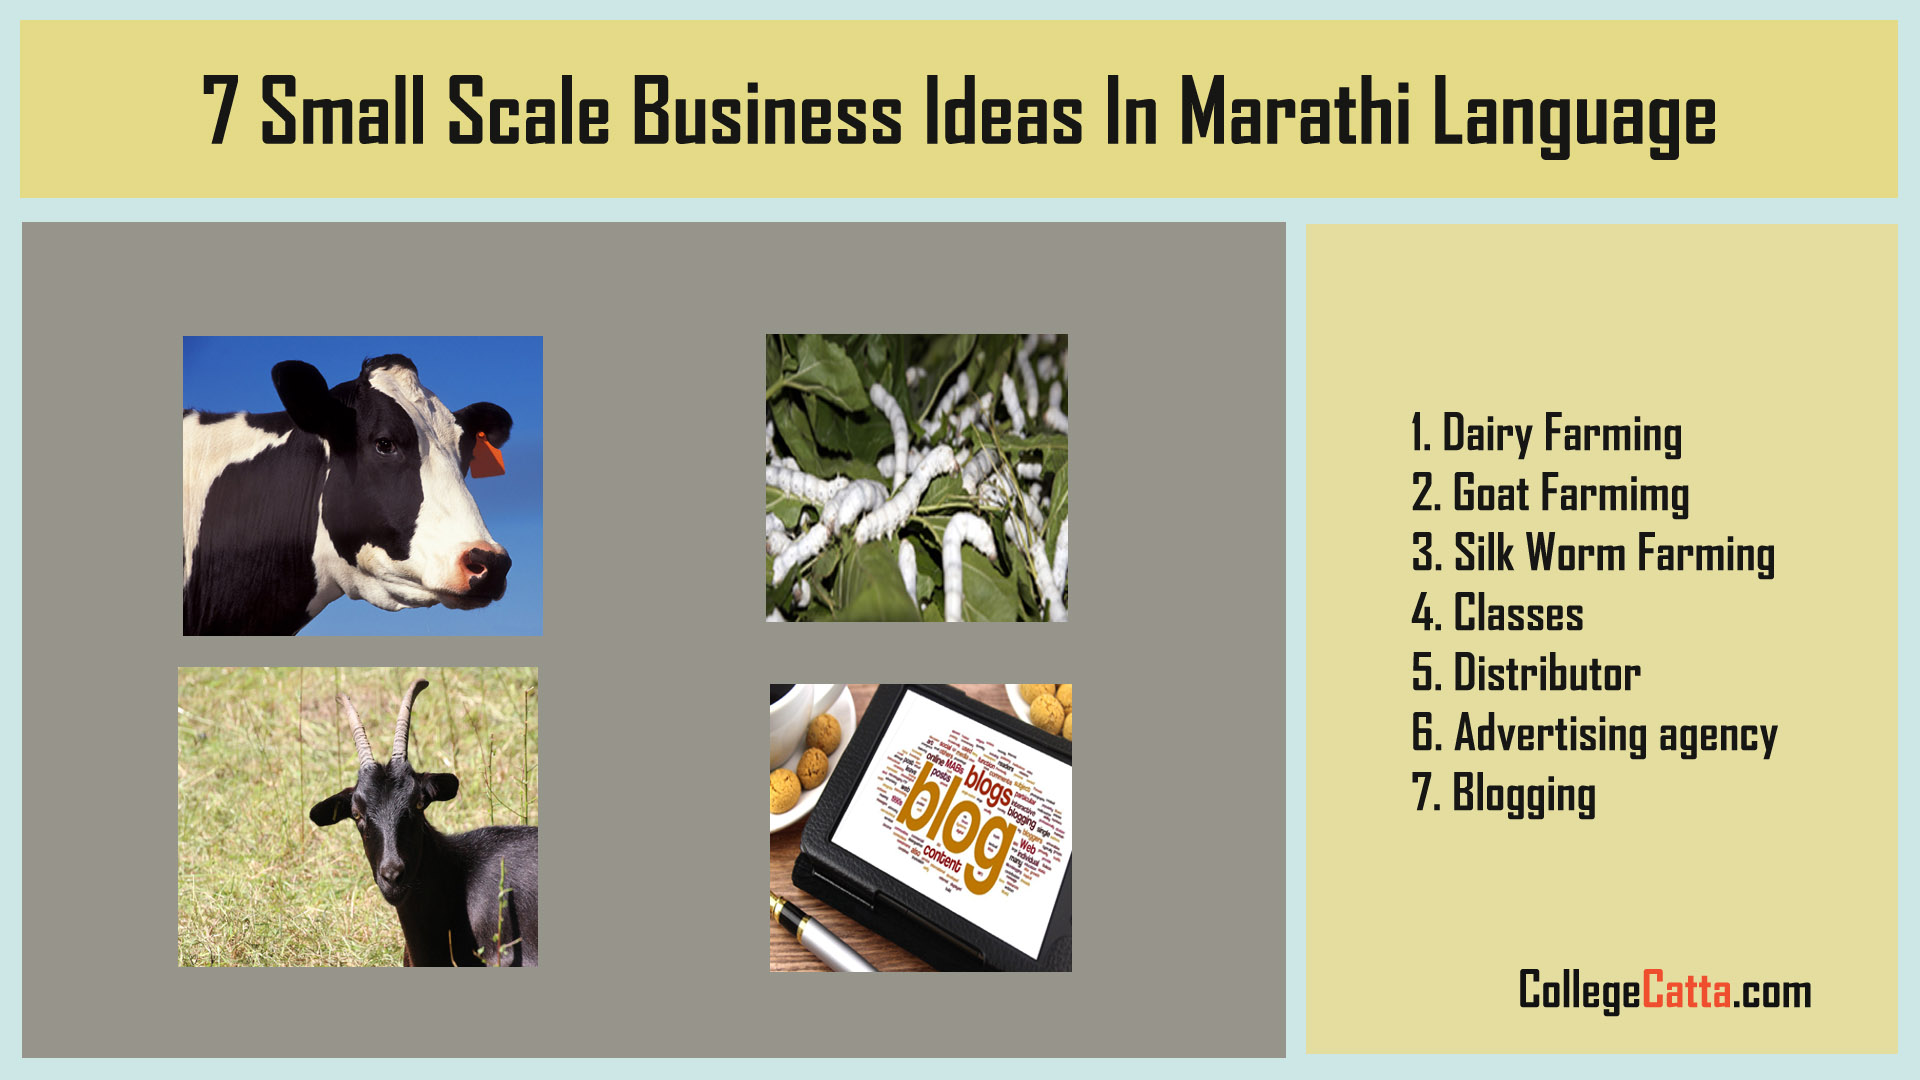 7 Small Scale Business Ideas In Marathi Language